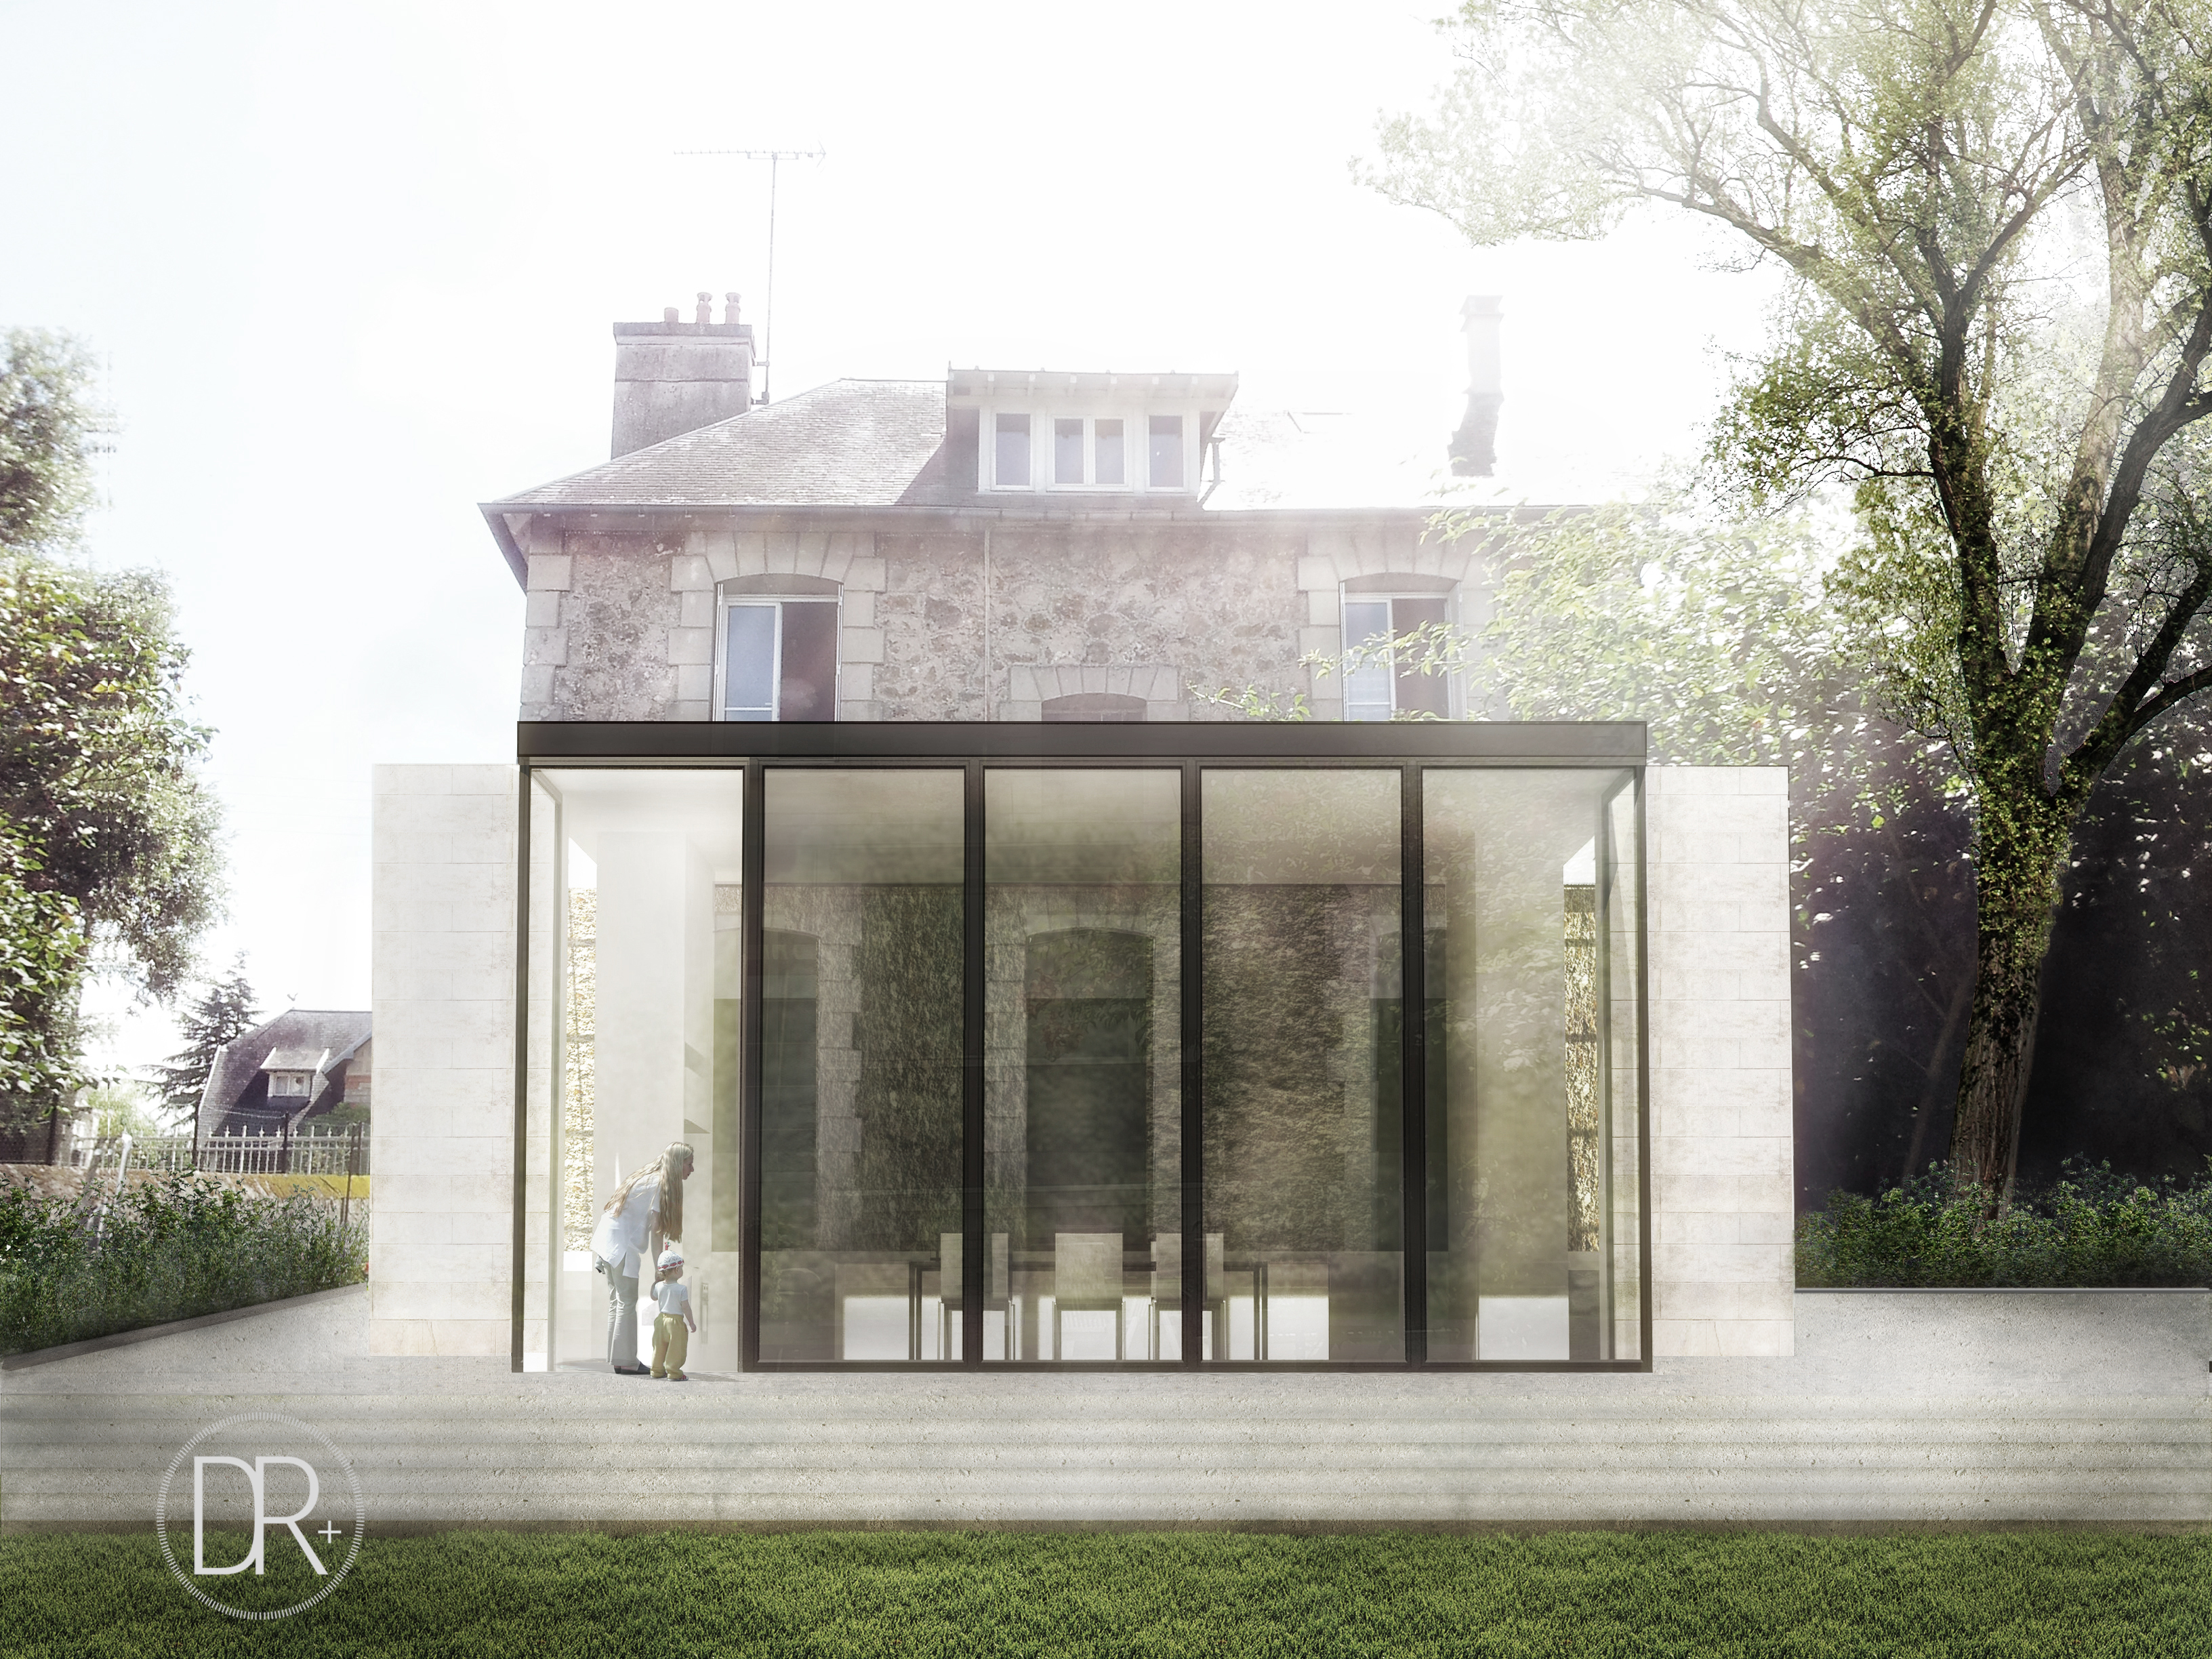 Extension cuisine sur jardin d r architectes for Cuisine extension